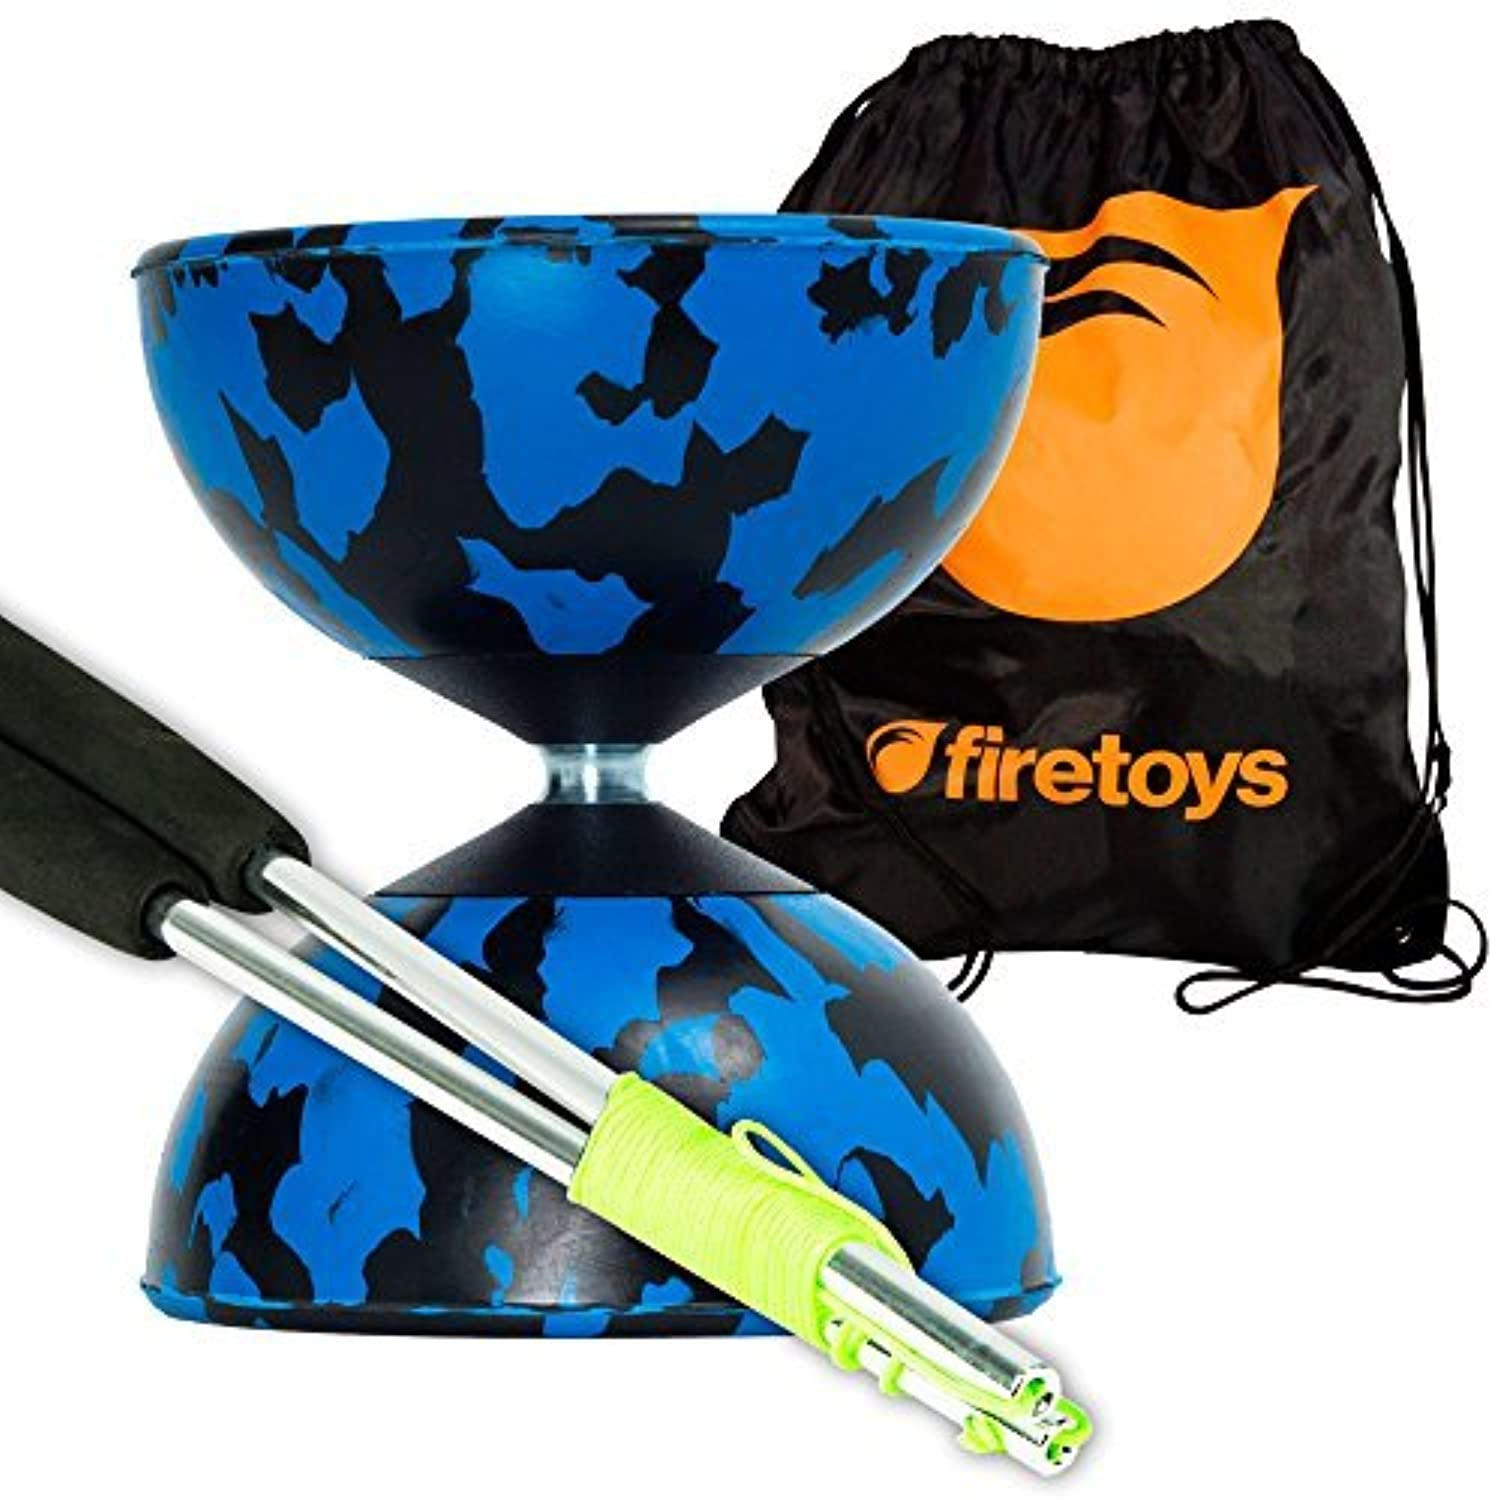 Harlequin Diabolos Set Metal Diabolo Sticks Diablo String & Bag (Blue & Black) [並行輸入品]